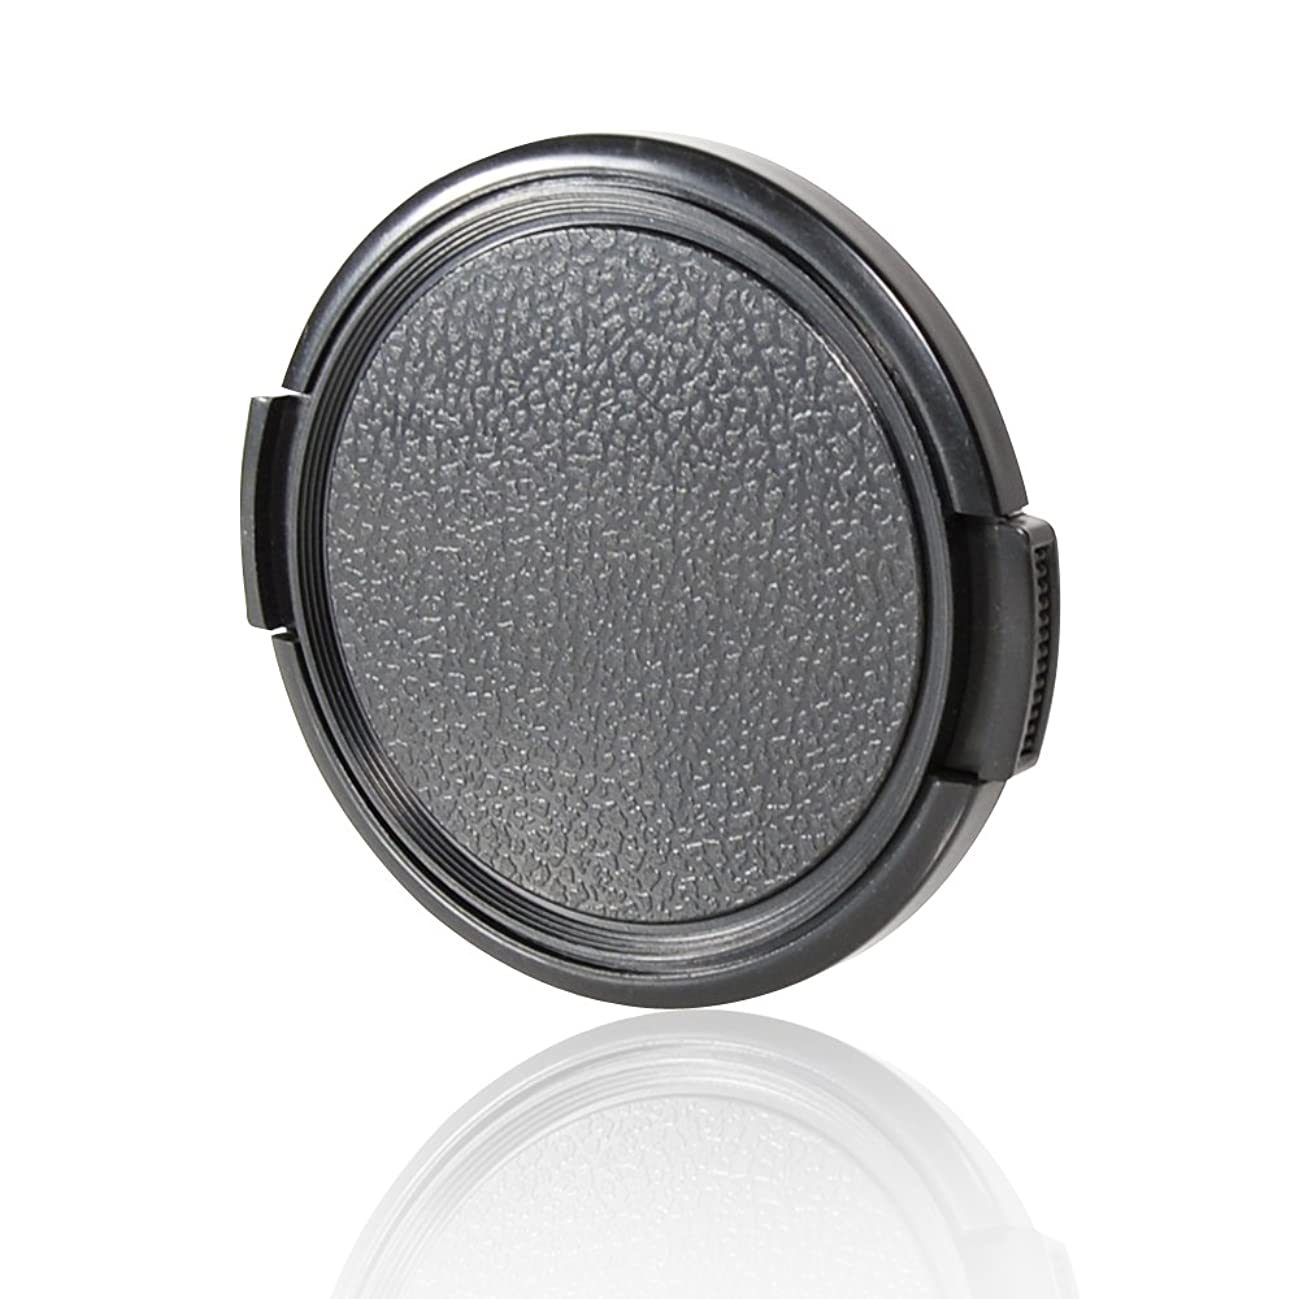 CamDesign 55MM Sides Pinch Snap-On Front Lens Cap/Cover Compatible with Canon, Nikon, Sony, Pentax all DSLR lenses